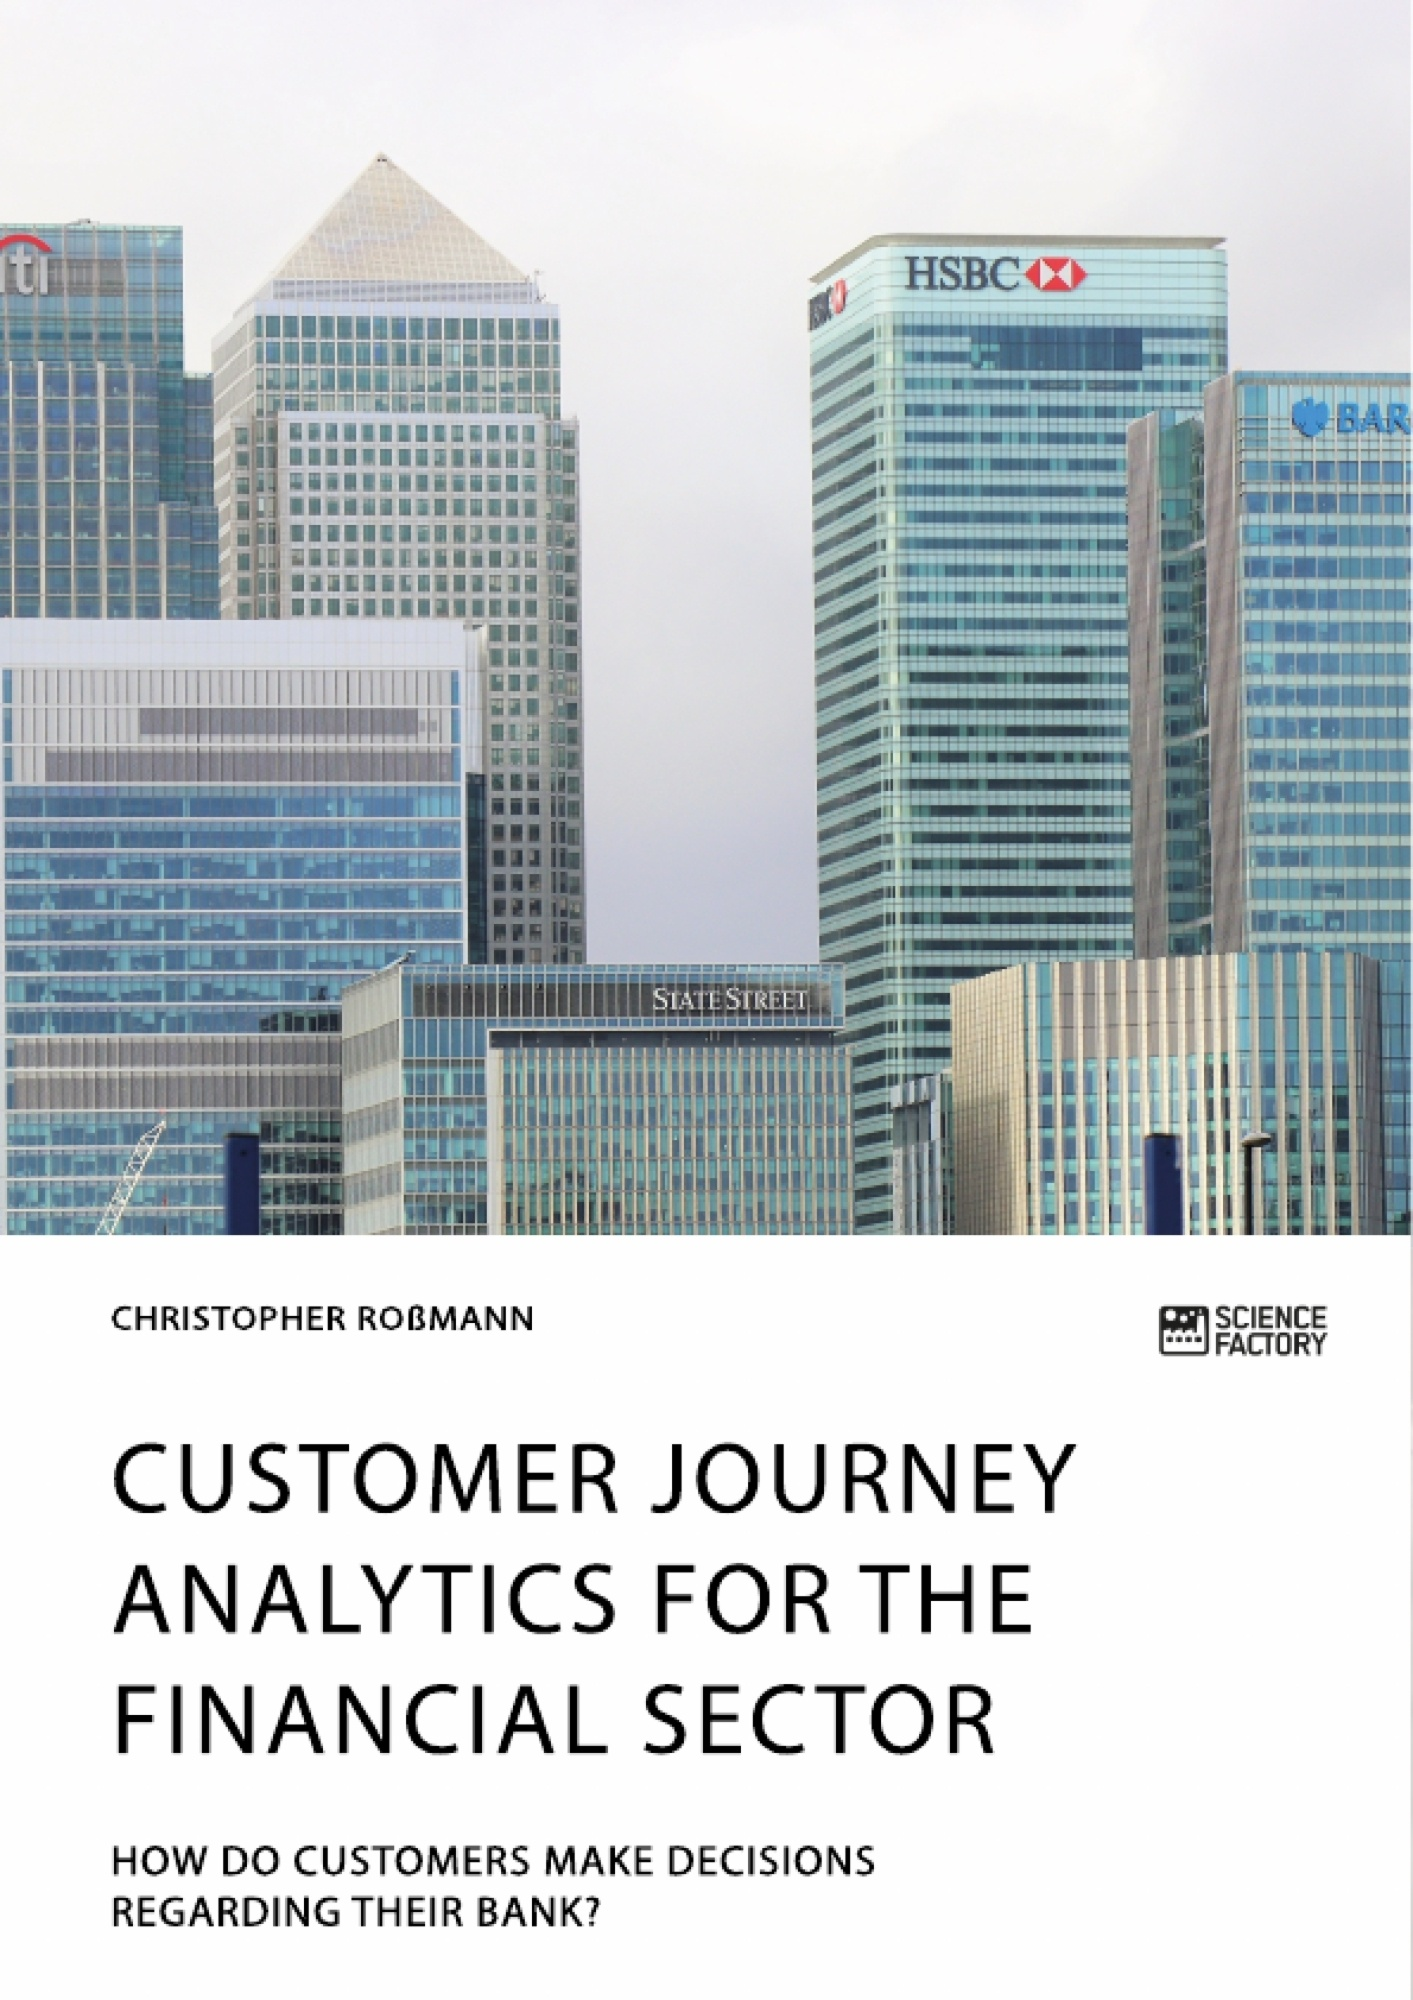 Title: Customer journey analytics for the financial sector. How do customers make decisions regarding their bank?